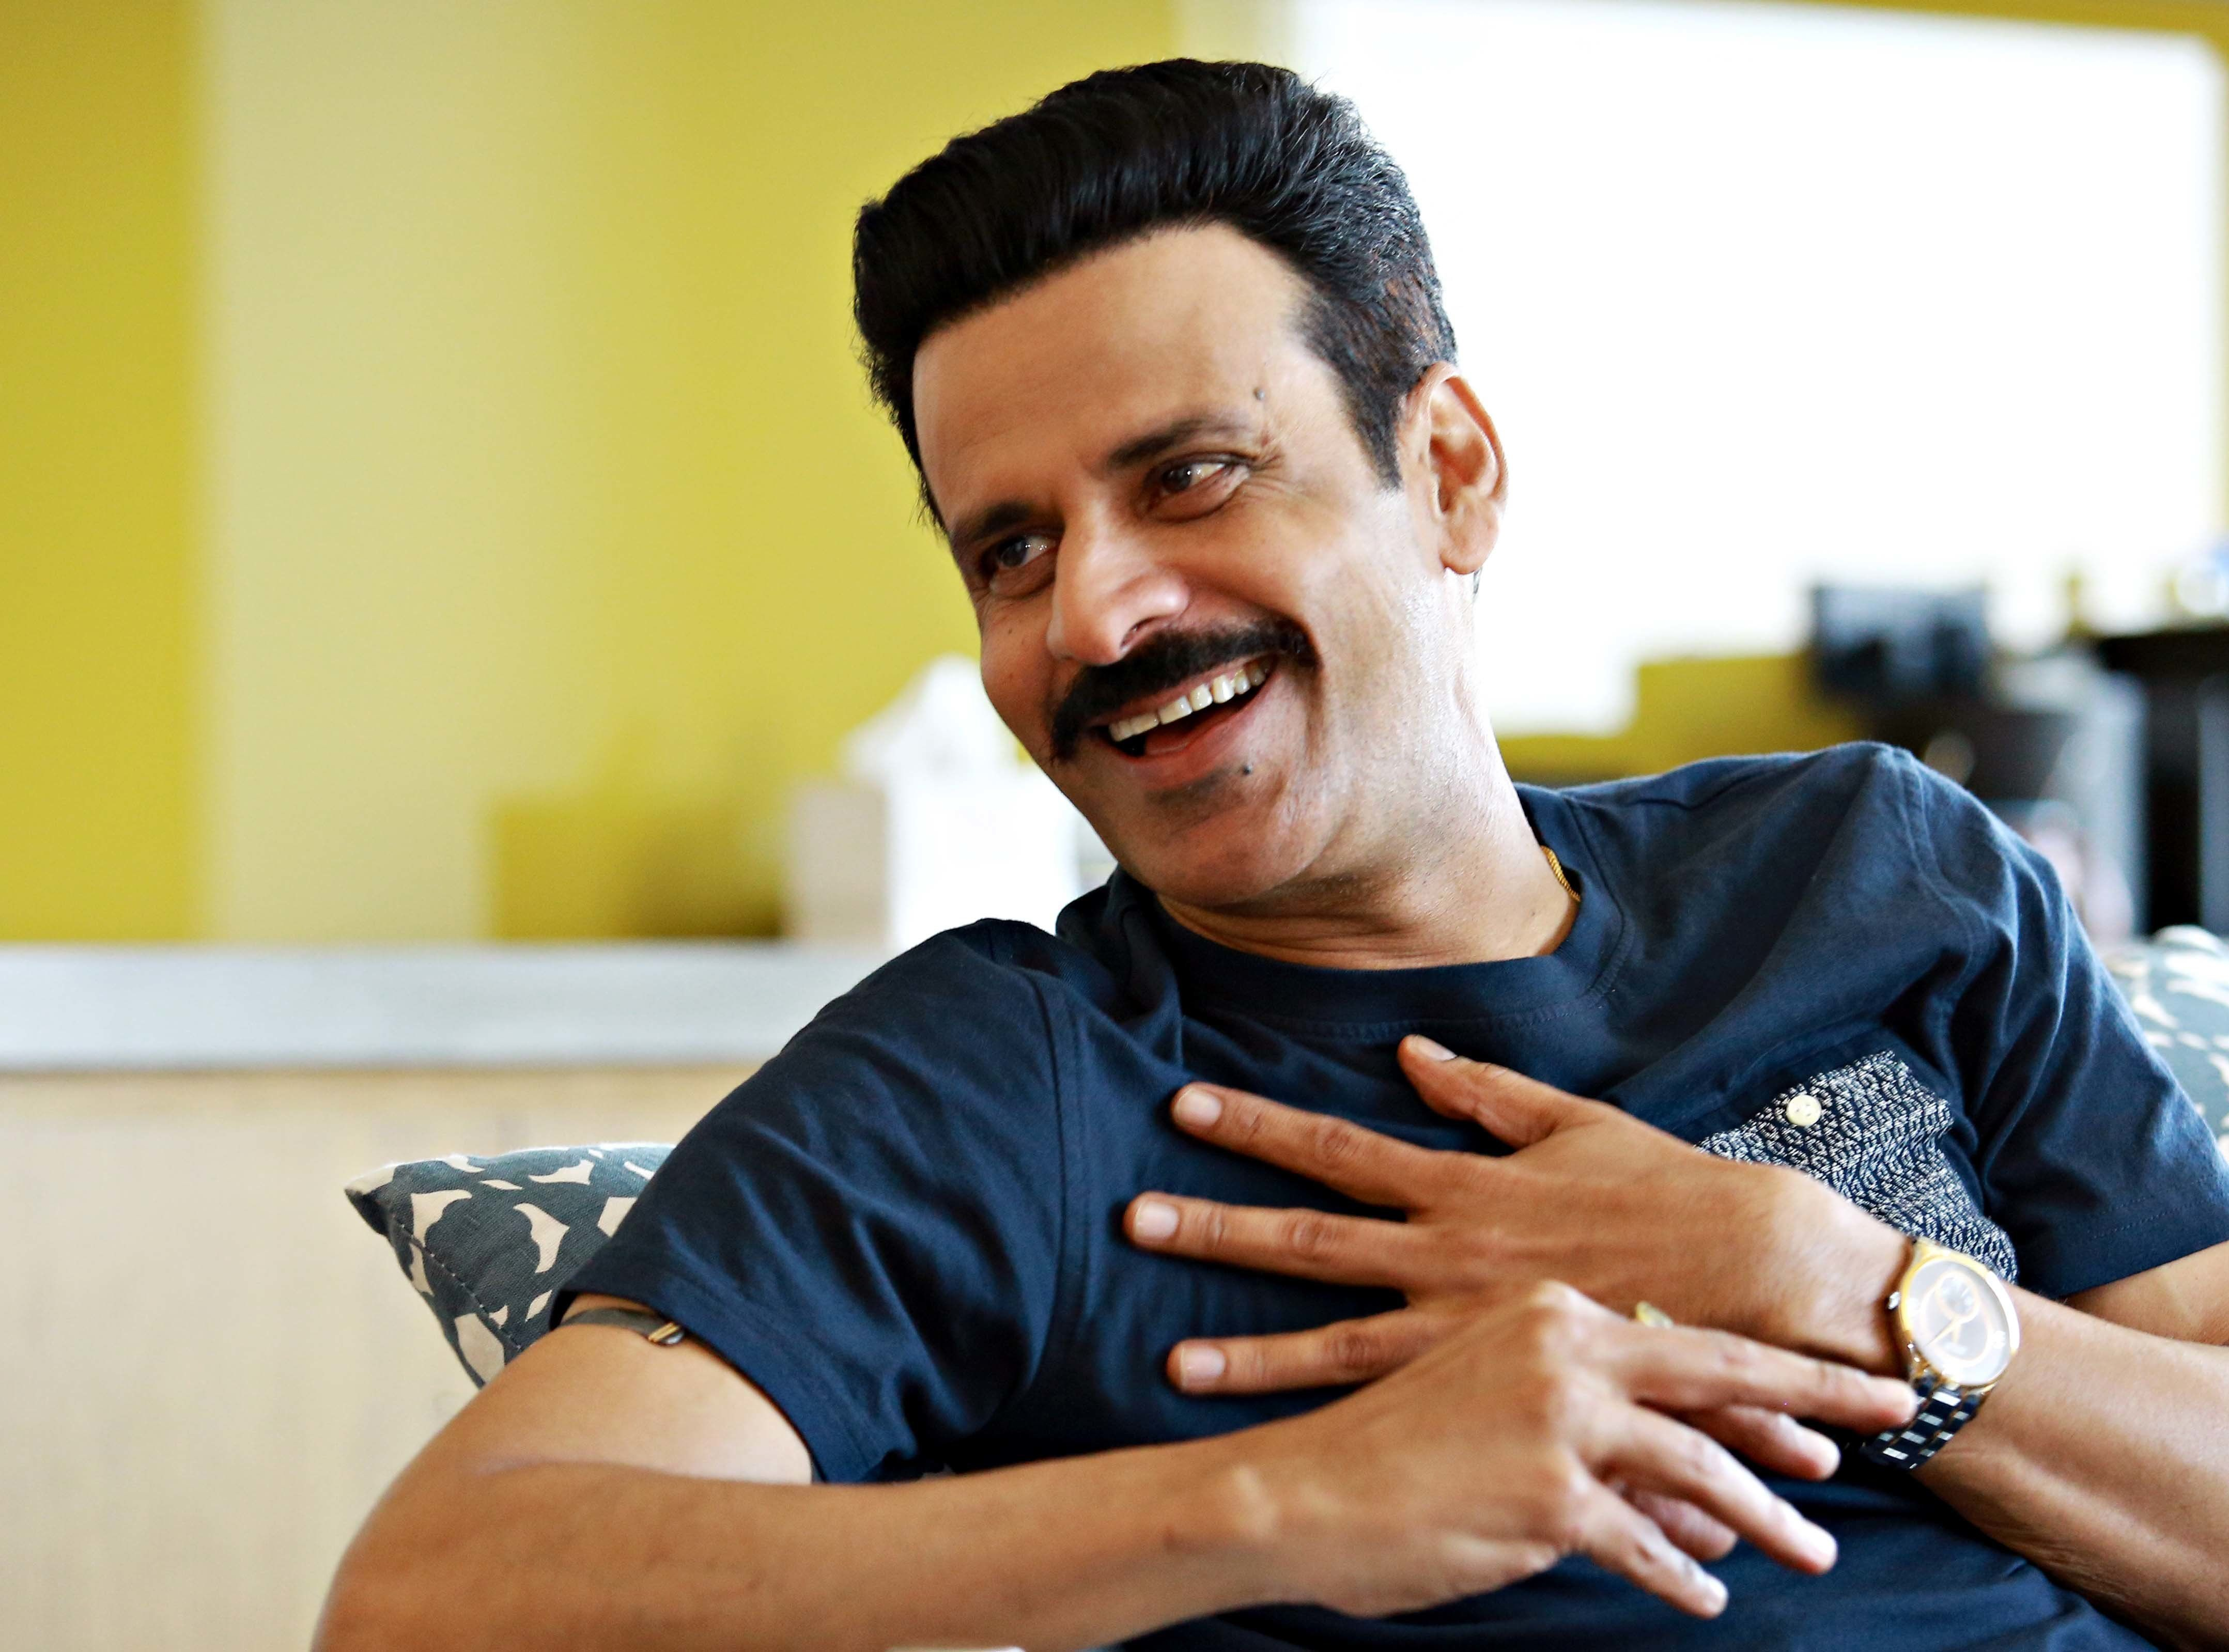 NEW DELHI, INDIA - SEPTEMBER 18: (EDITOR'S NOTE: This is an exclusive image of Hindustan Times) Bollywood actor Manoj Bajpayee during an exclusive interview with HTCity-Hindustan Times, on September 18, 2017 in New Delhi, India. His upcoming film, In The Shadows (Gali Guliyaan in Hindi), already making waves both in India and abroad, premieres at the Busan Film Festival, and has also been nominated for the prestigious Golden Hugo Award at the Chicago International Film Festival, an award India won only once, for Mrinal Sens Khandhar (1984). (Photo by Amal Ks/Hindustan Times via Getty Images)